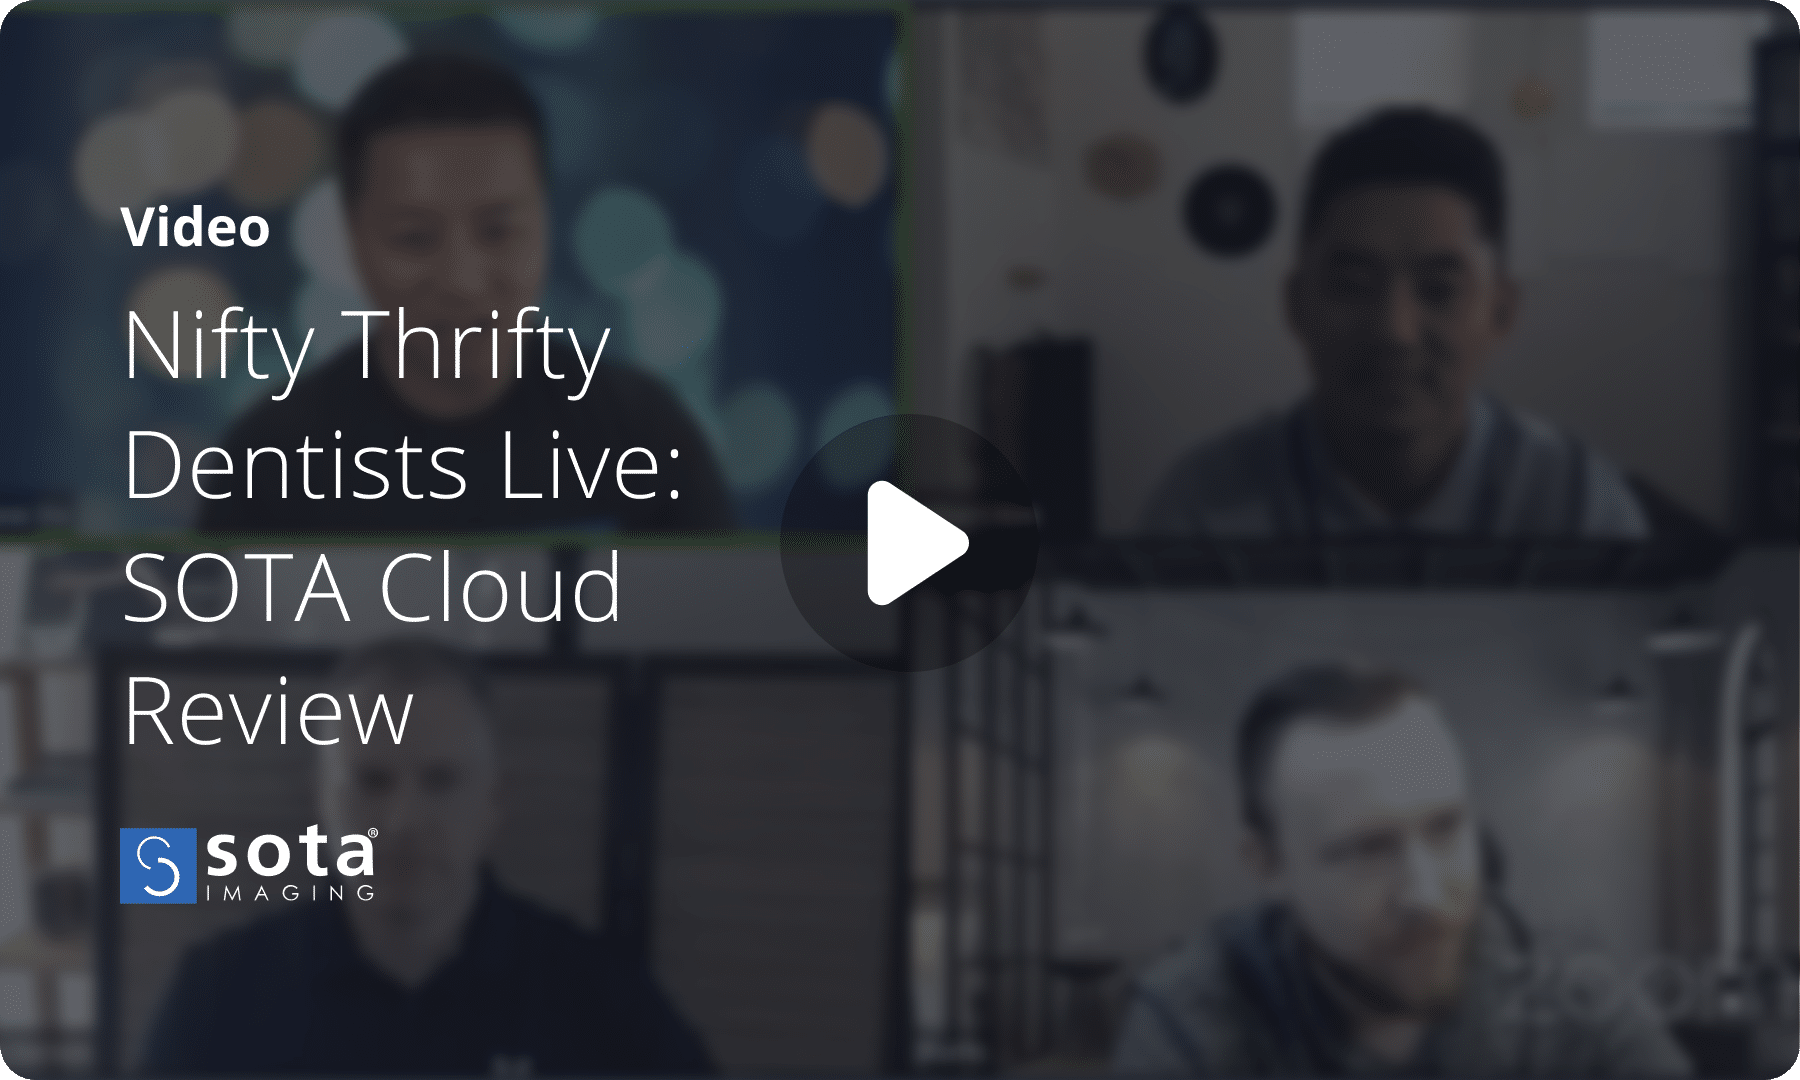 Nifty Thrifty Live Interview of SOTA Imaging team about SOTA Cloud dental imaging software